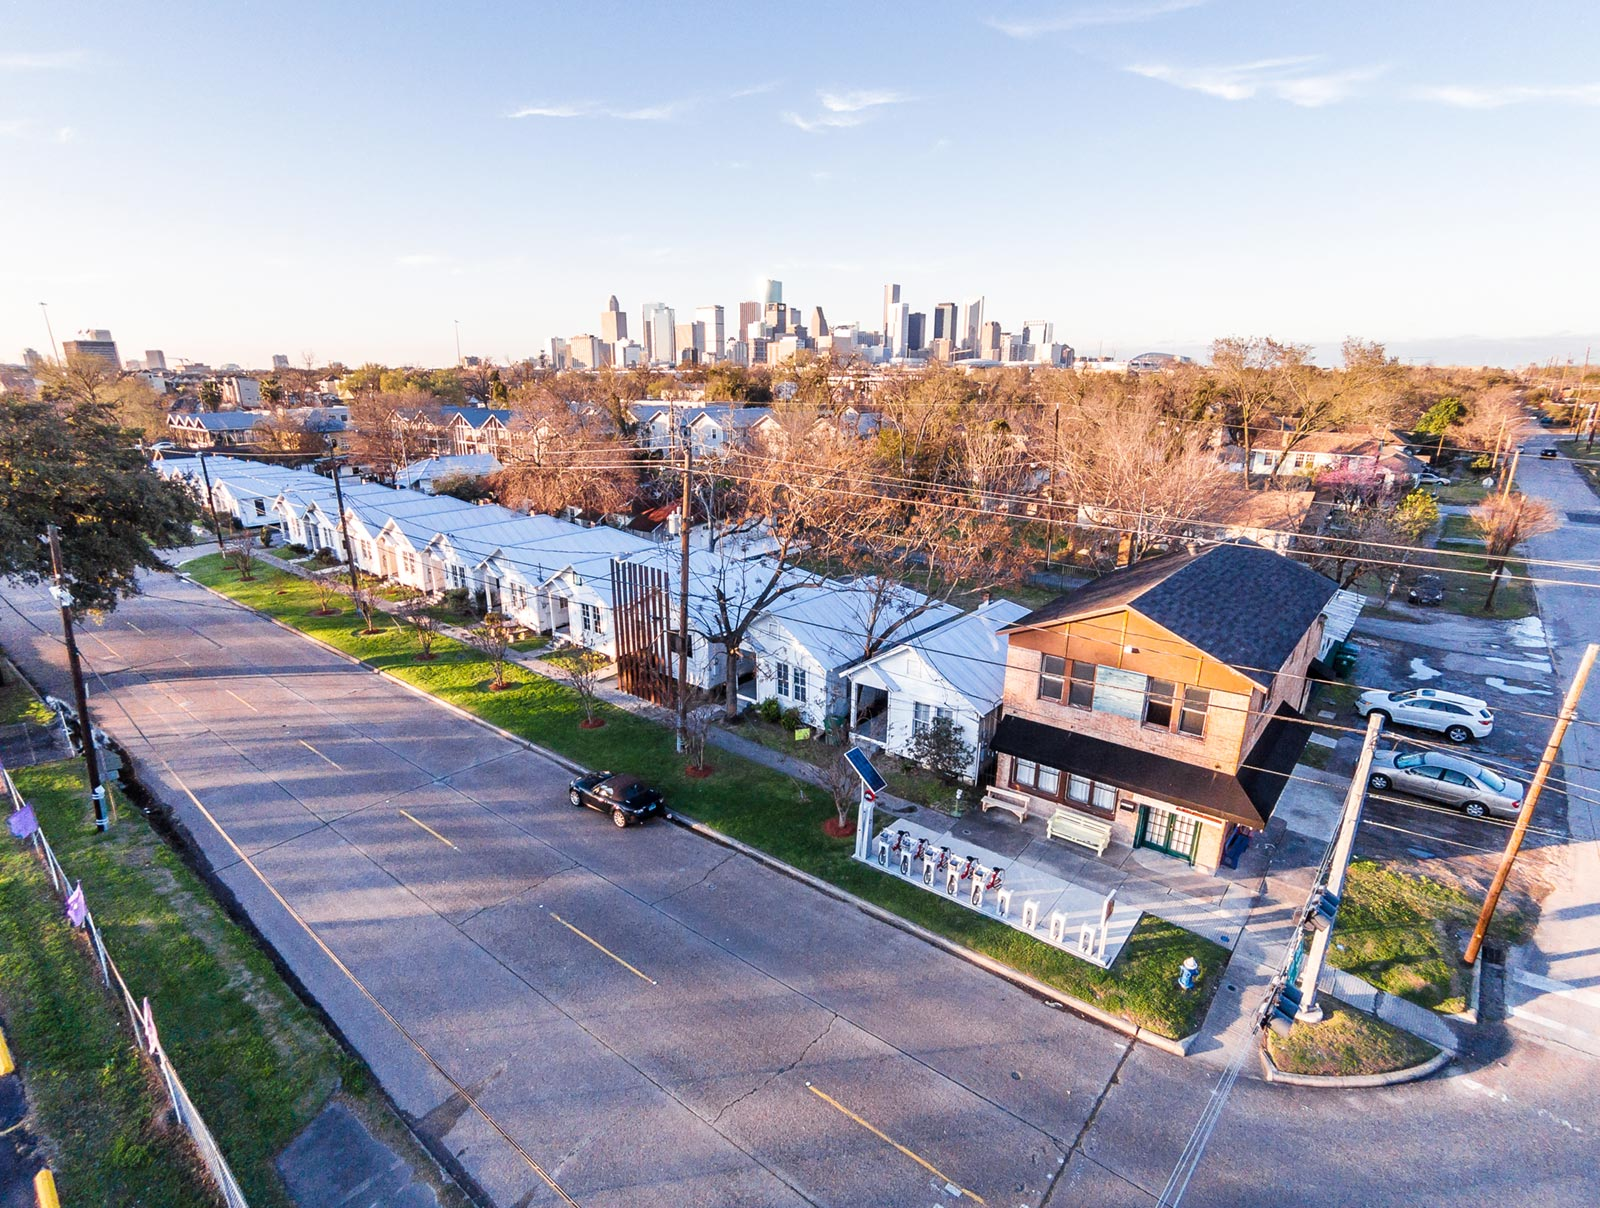 Aerial View of Project Row Houses during Round 41. Image Credit: Peter Molick